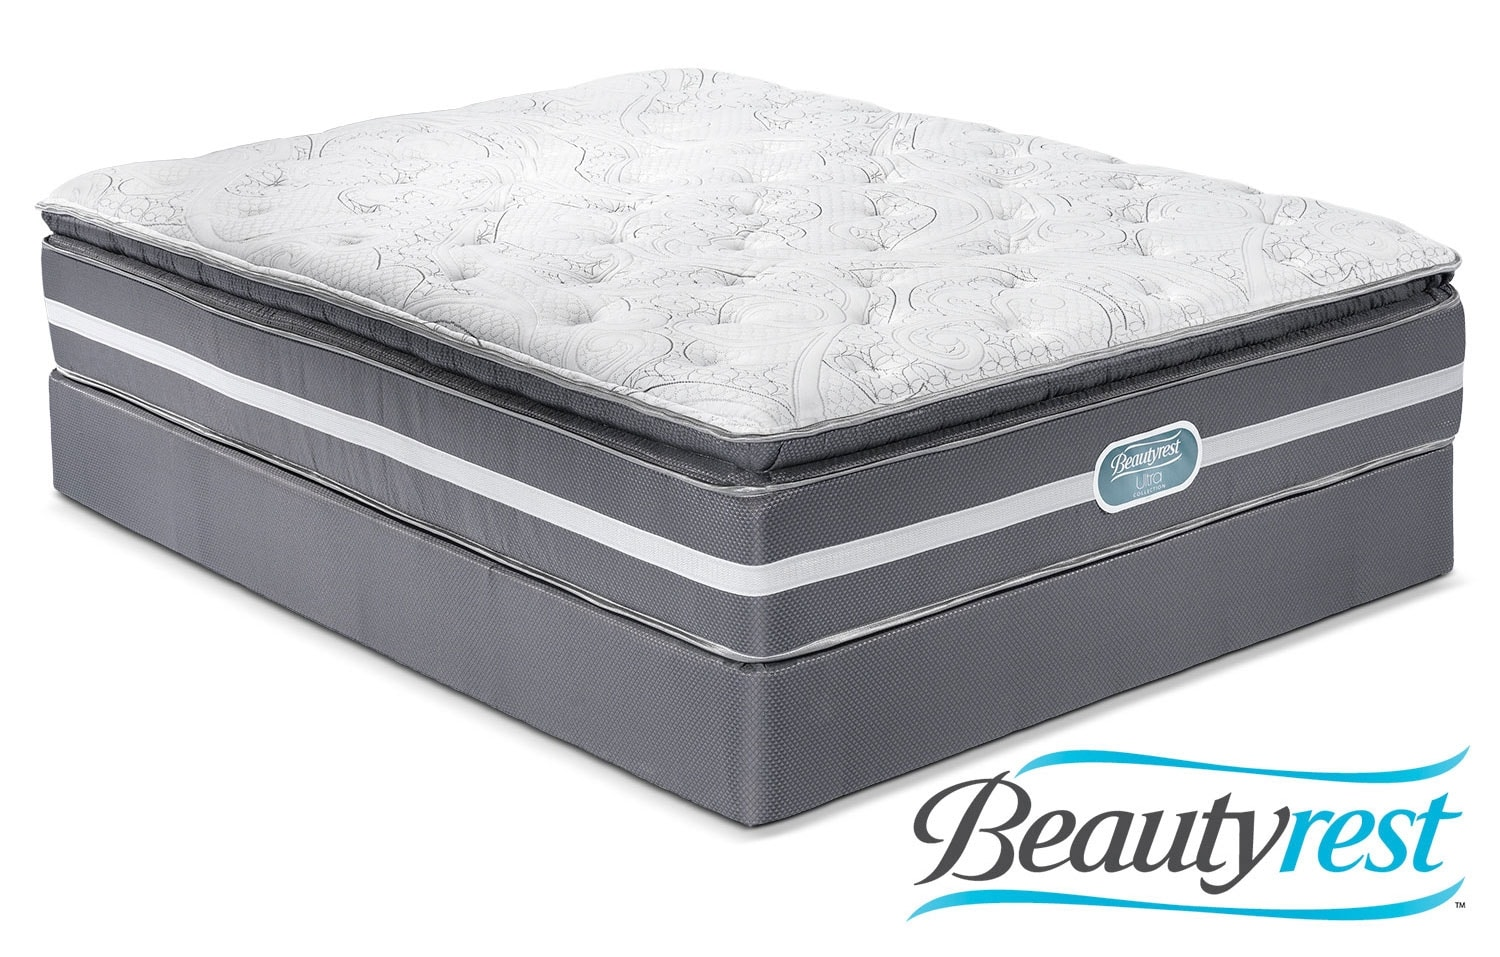 Mattresses and Bedding - Simmons Paradise Plush Full Mattress/Boxspring Set